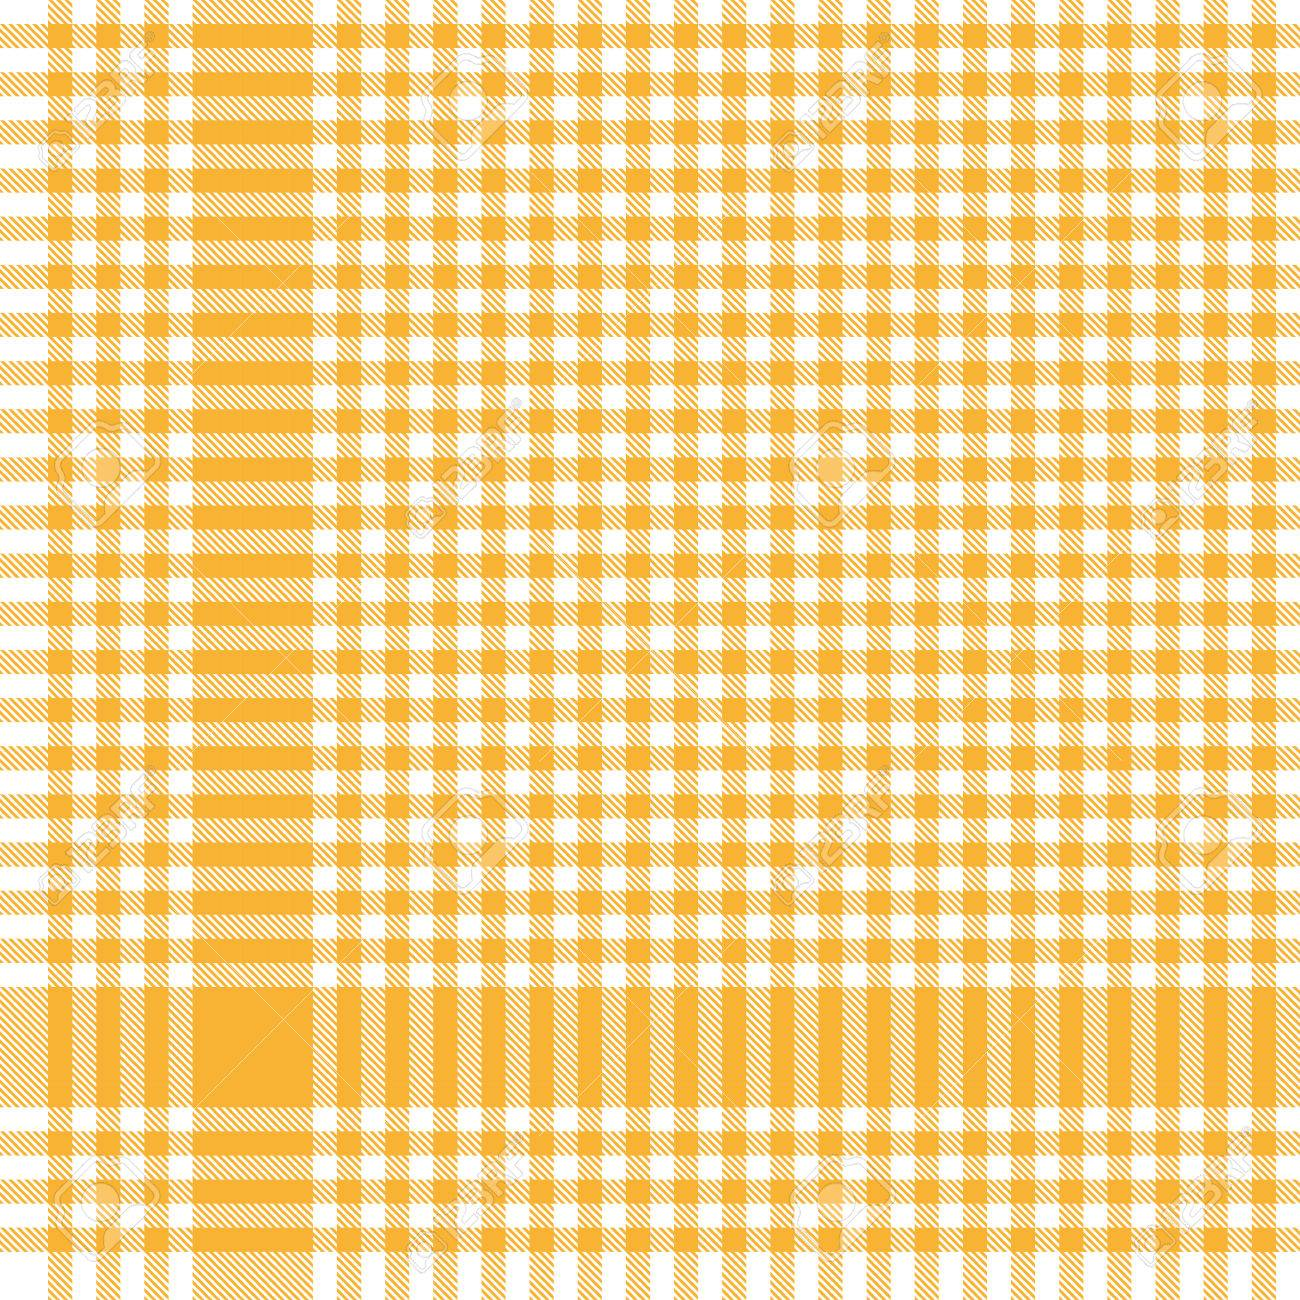 Vector   Yellow Colored Checkered Table Cloth Pattern For Background Design